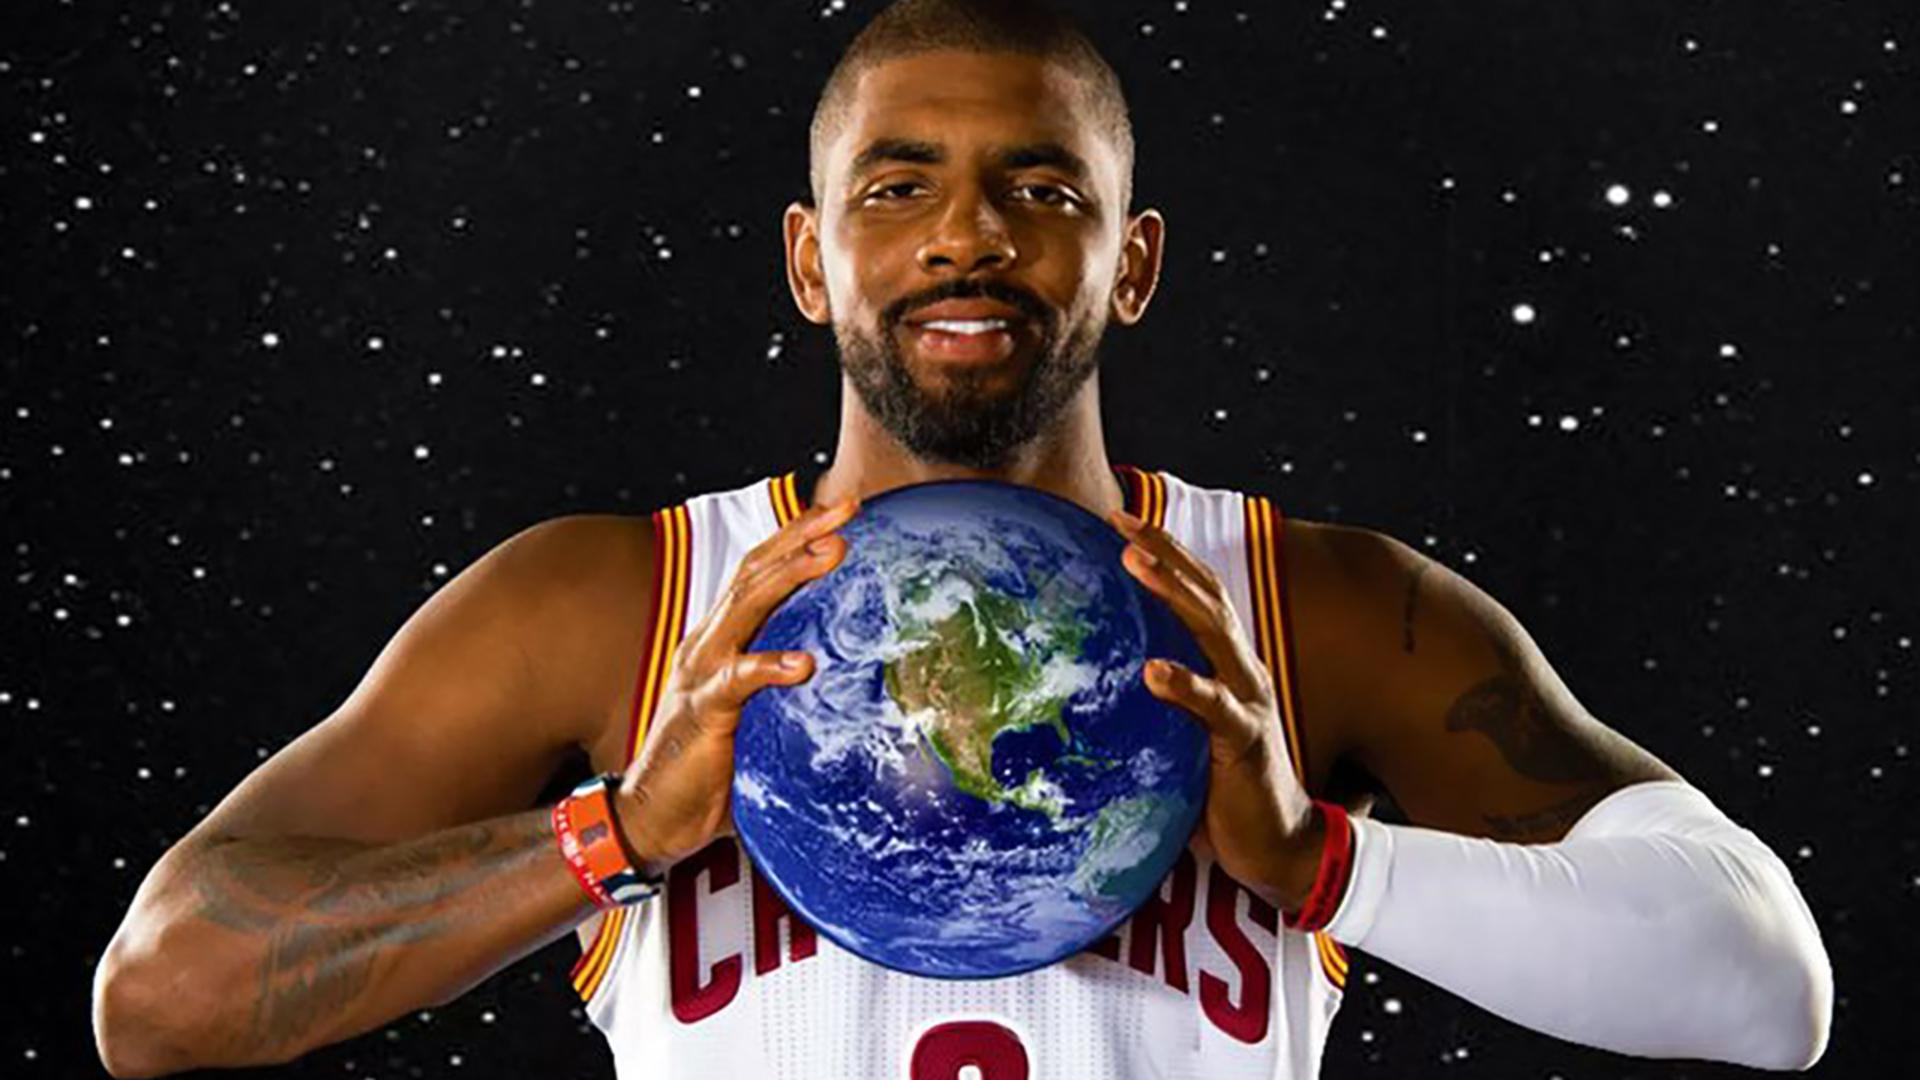 Kyrie Irving Says the Earth is Flat...